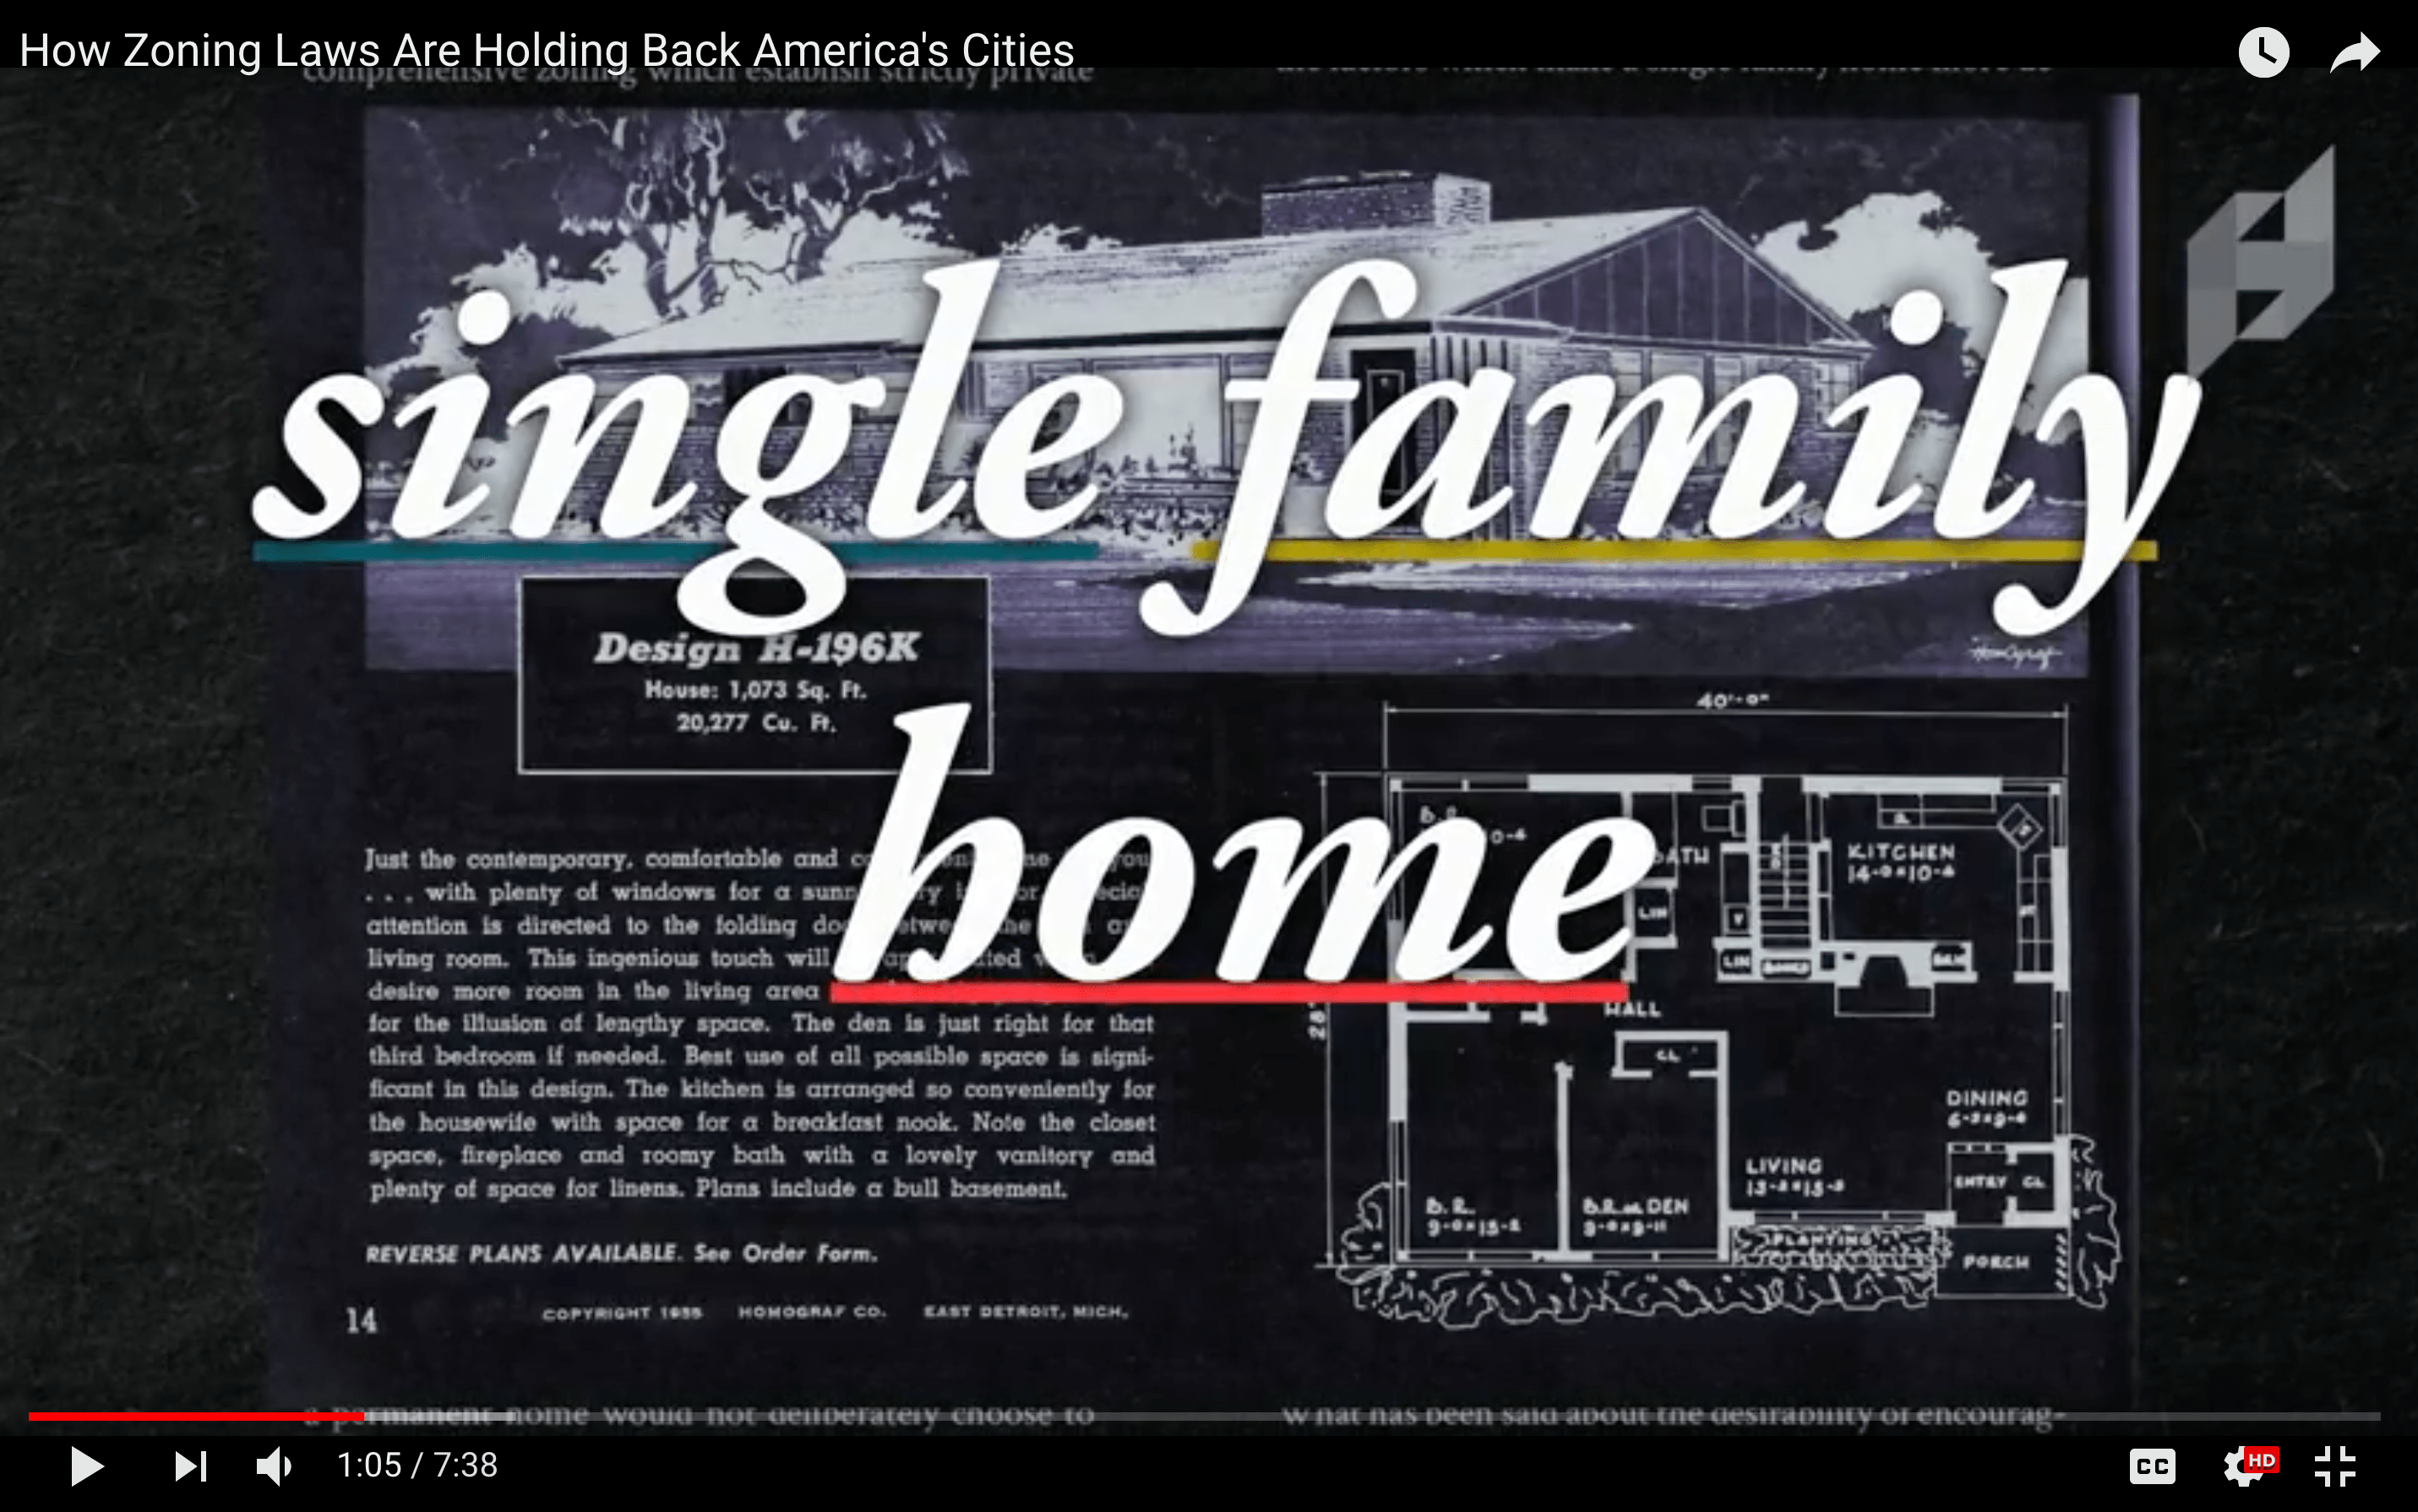 New Video: How Zoning Laws Are Holding Back America's Cities